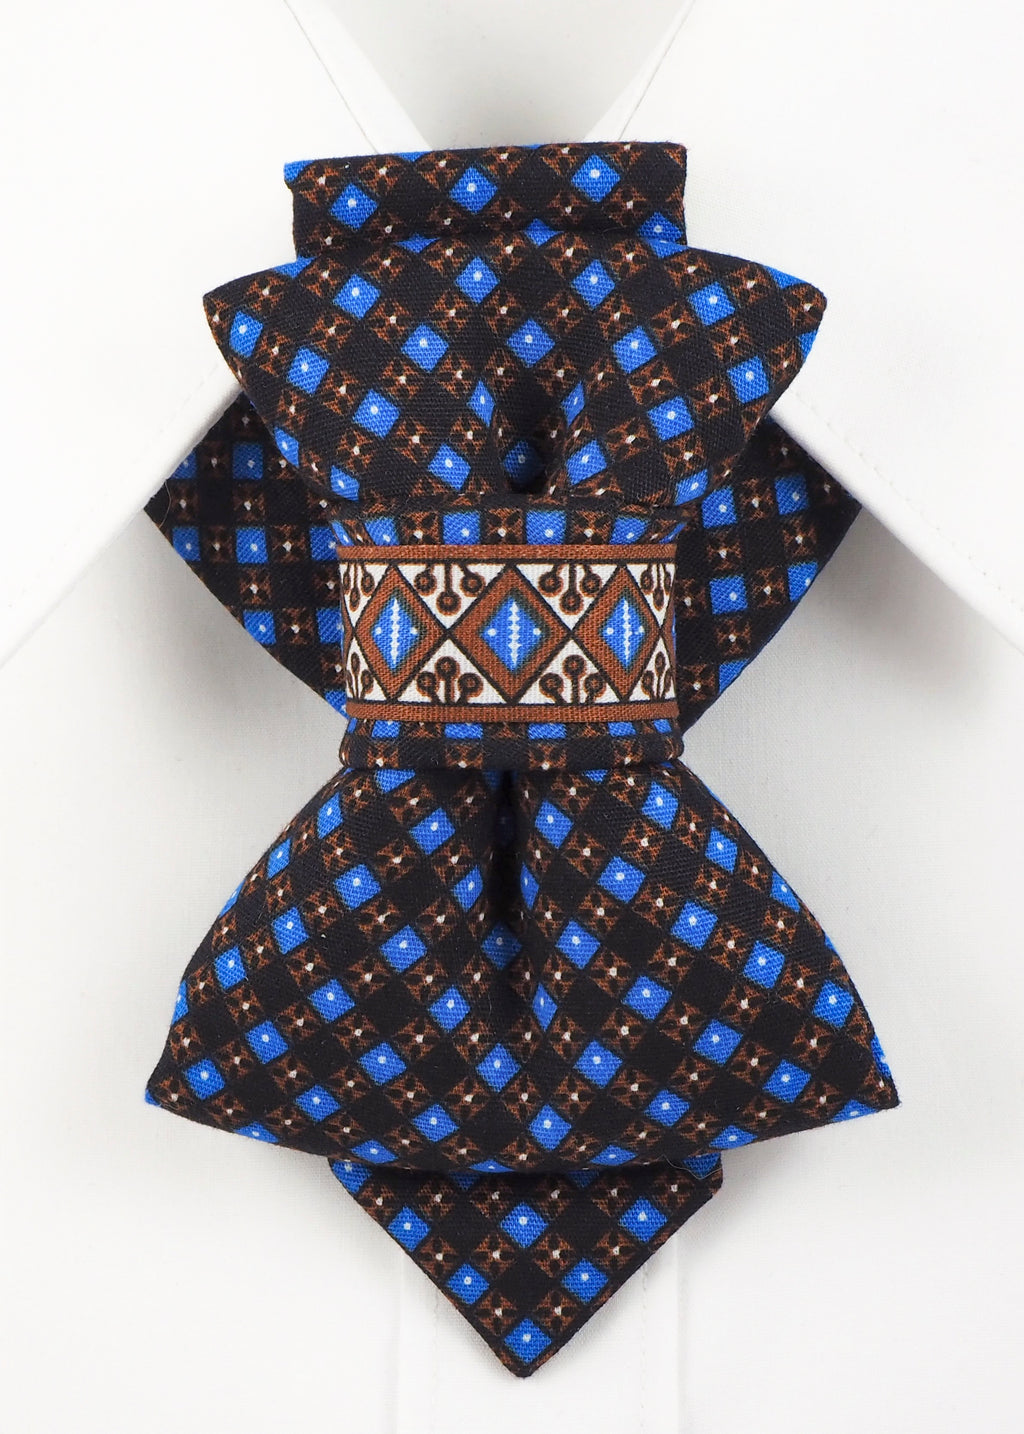 Bow Tie, Tie for wedding suite CAMBODGE hopper tie Bow tie, original bow tie for men